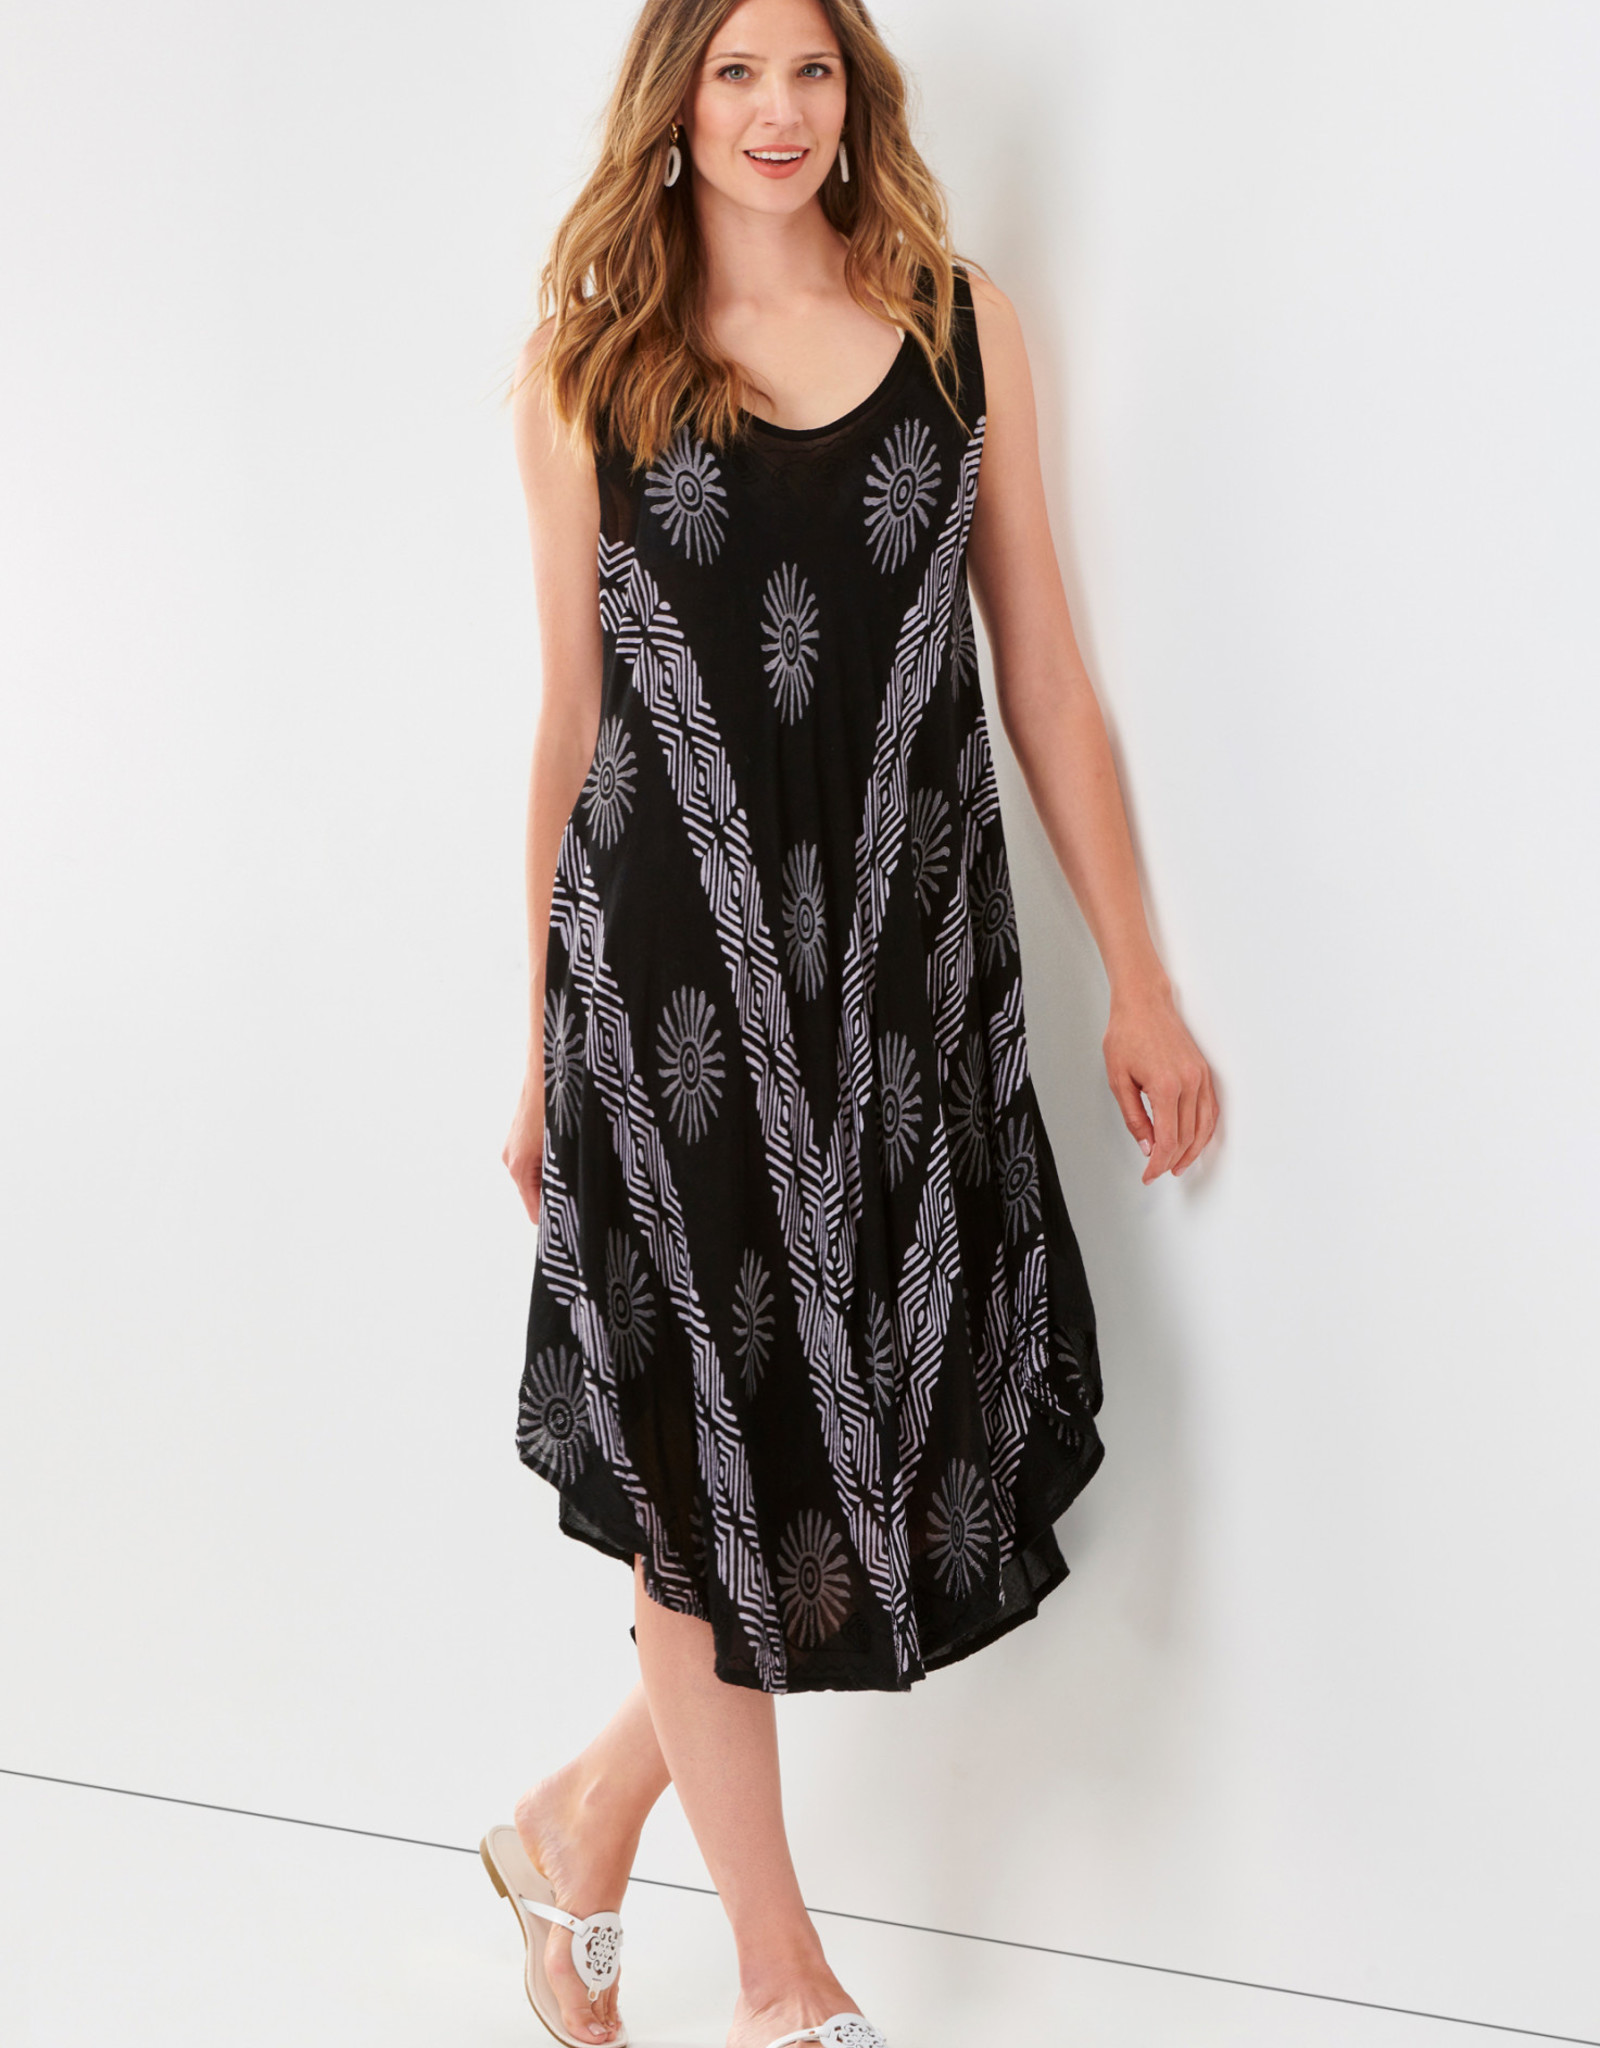 Charlie Paige CP - Woven Print Dress